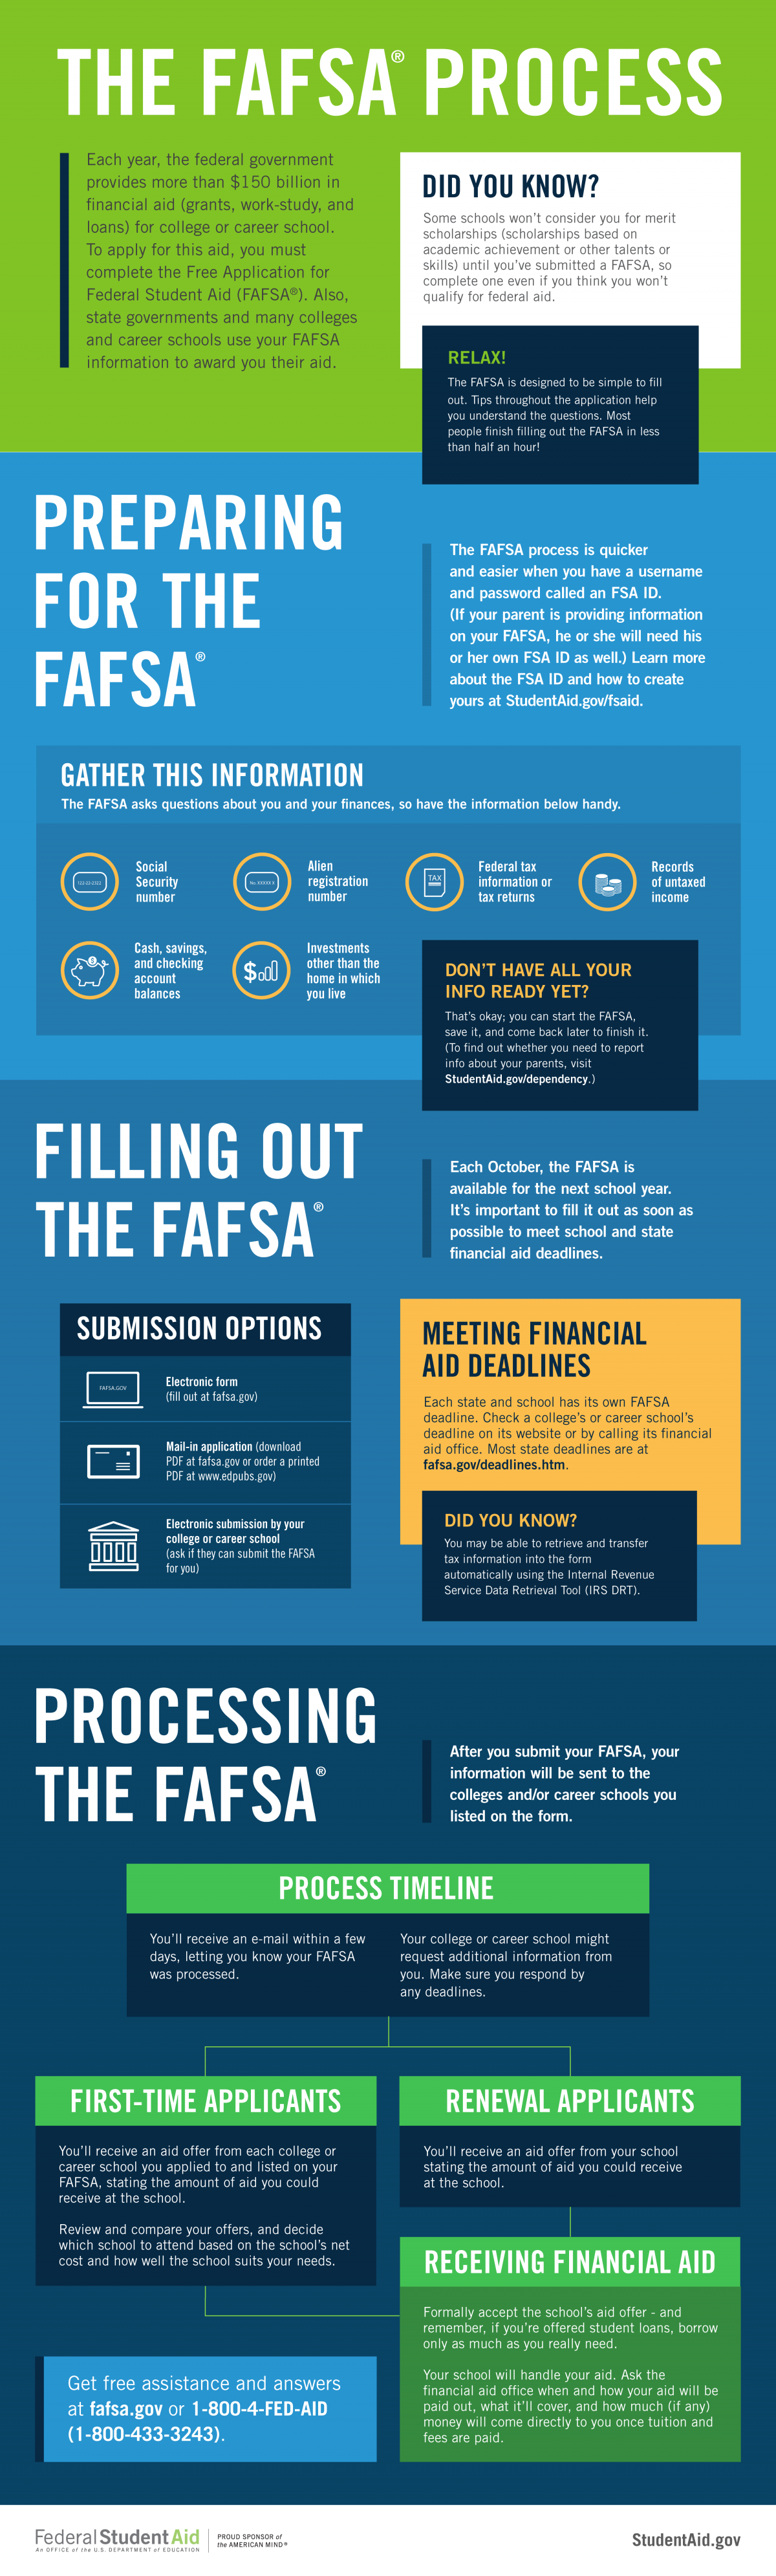 graphic credit: https://studentaid.ed.gov/sa/fafsa/filling-out